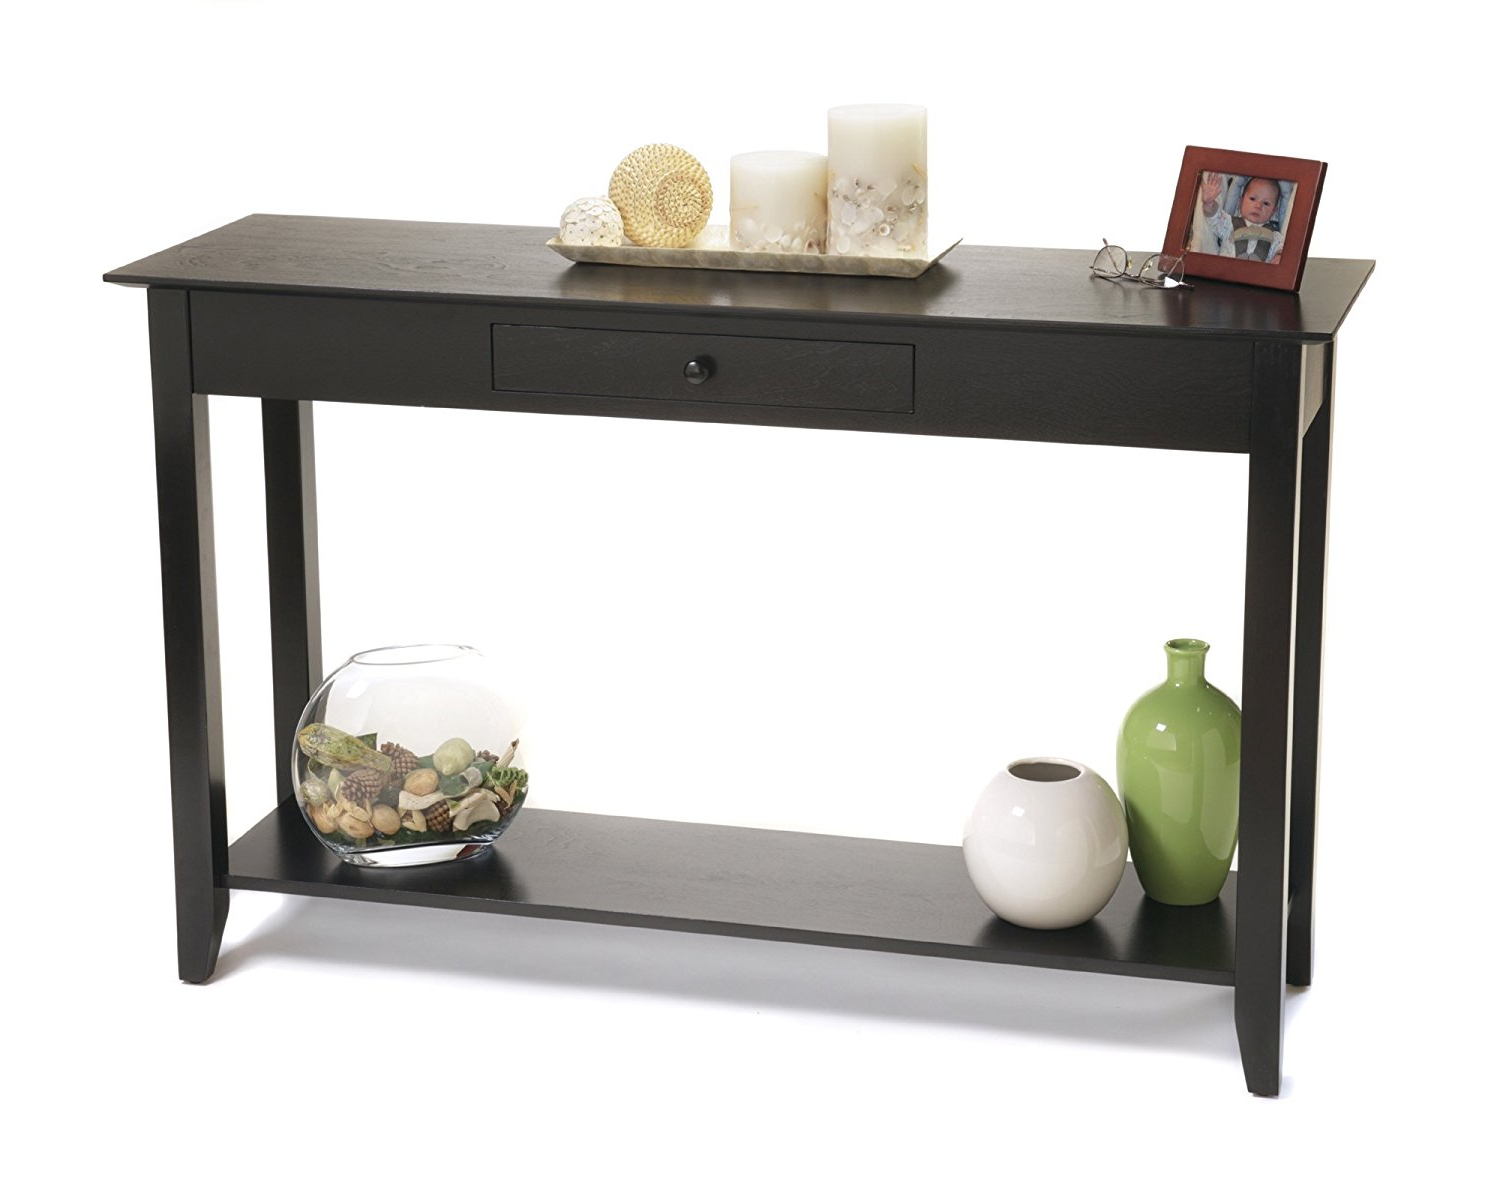 Preferred Sofa Table: Amusing Black Sofa Table Ikea Ideas Ikea White Sofa Pertaining To Parsons White Marble Top & Brass Base 48X16 Console Tables (Gallery 15 of 20)